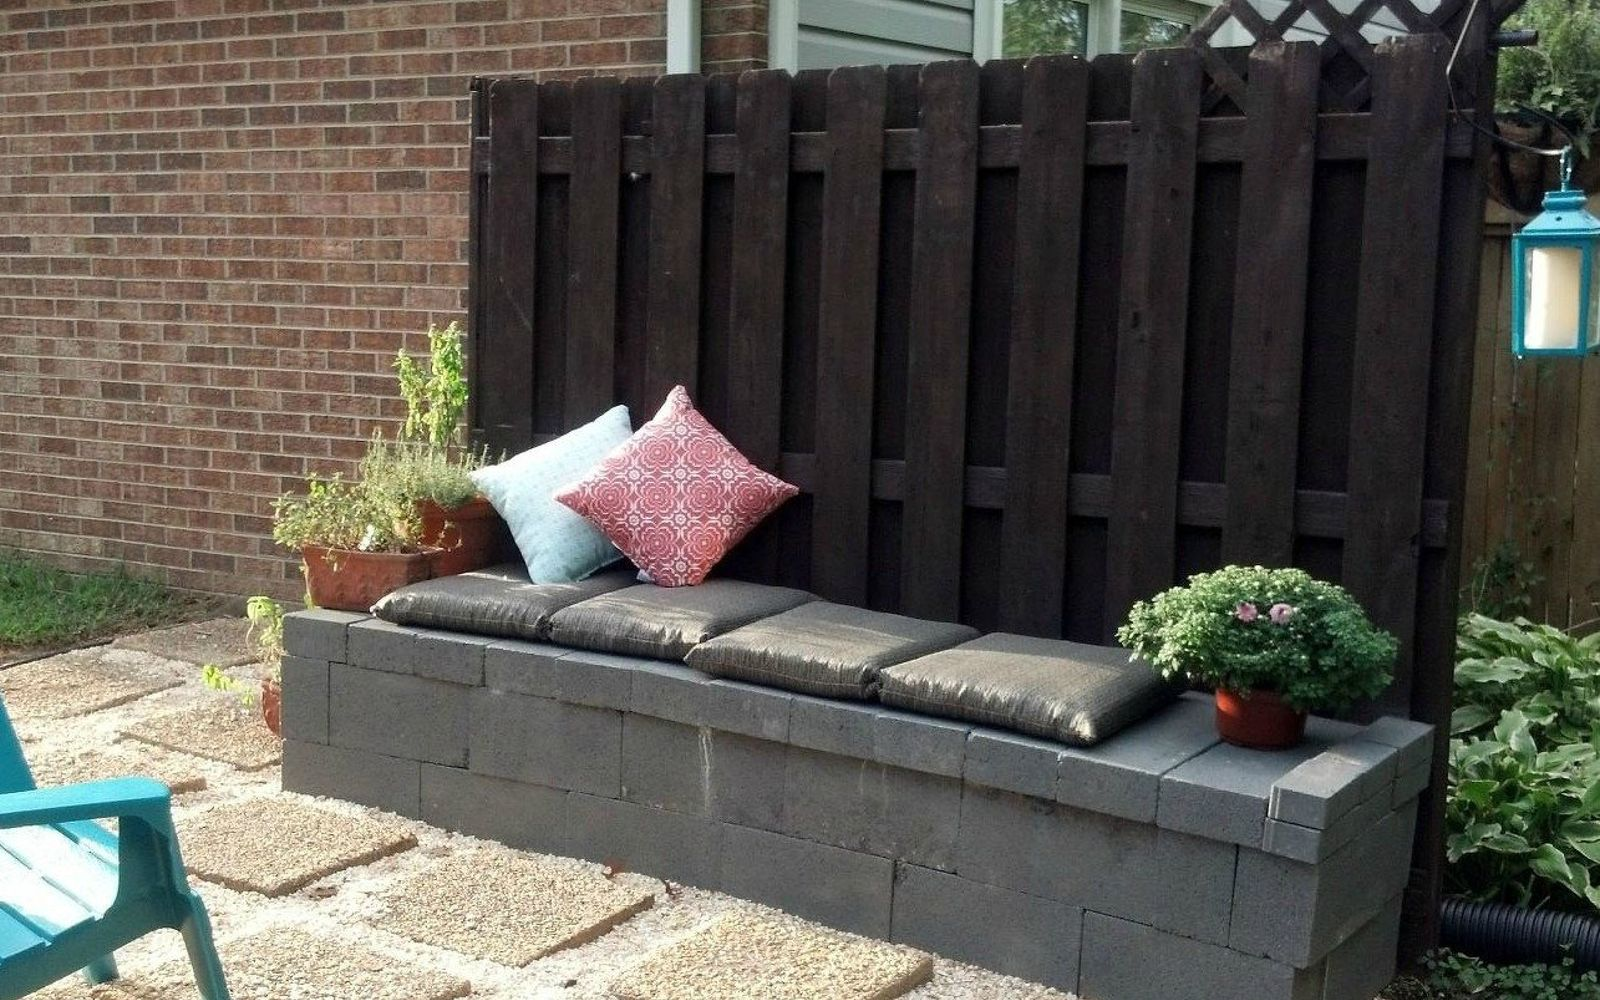 10 Genius Ways to Use Cinder Blocks in Your Garden | Hometalk